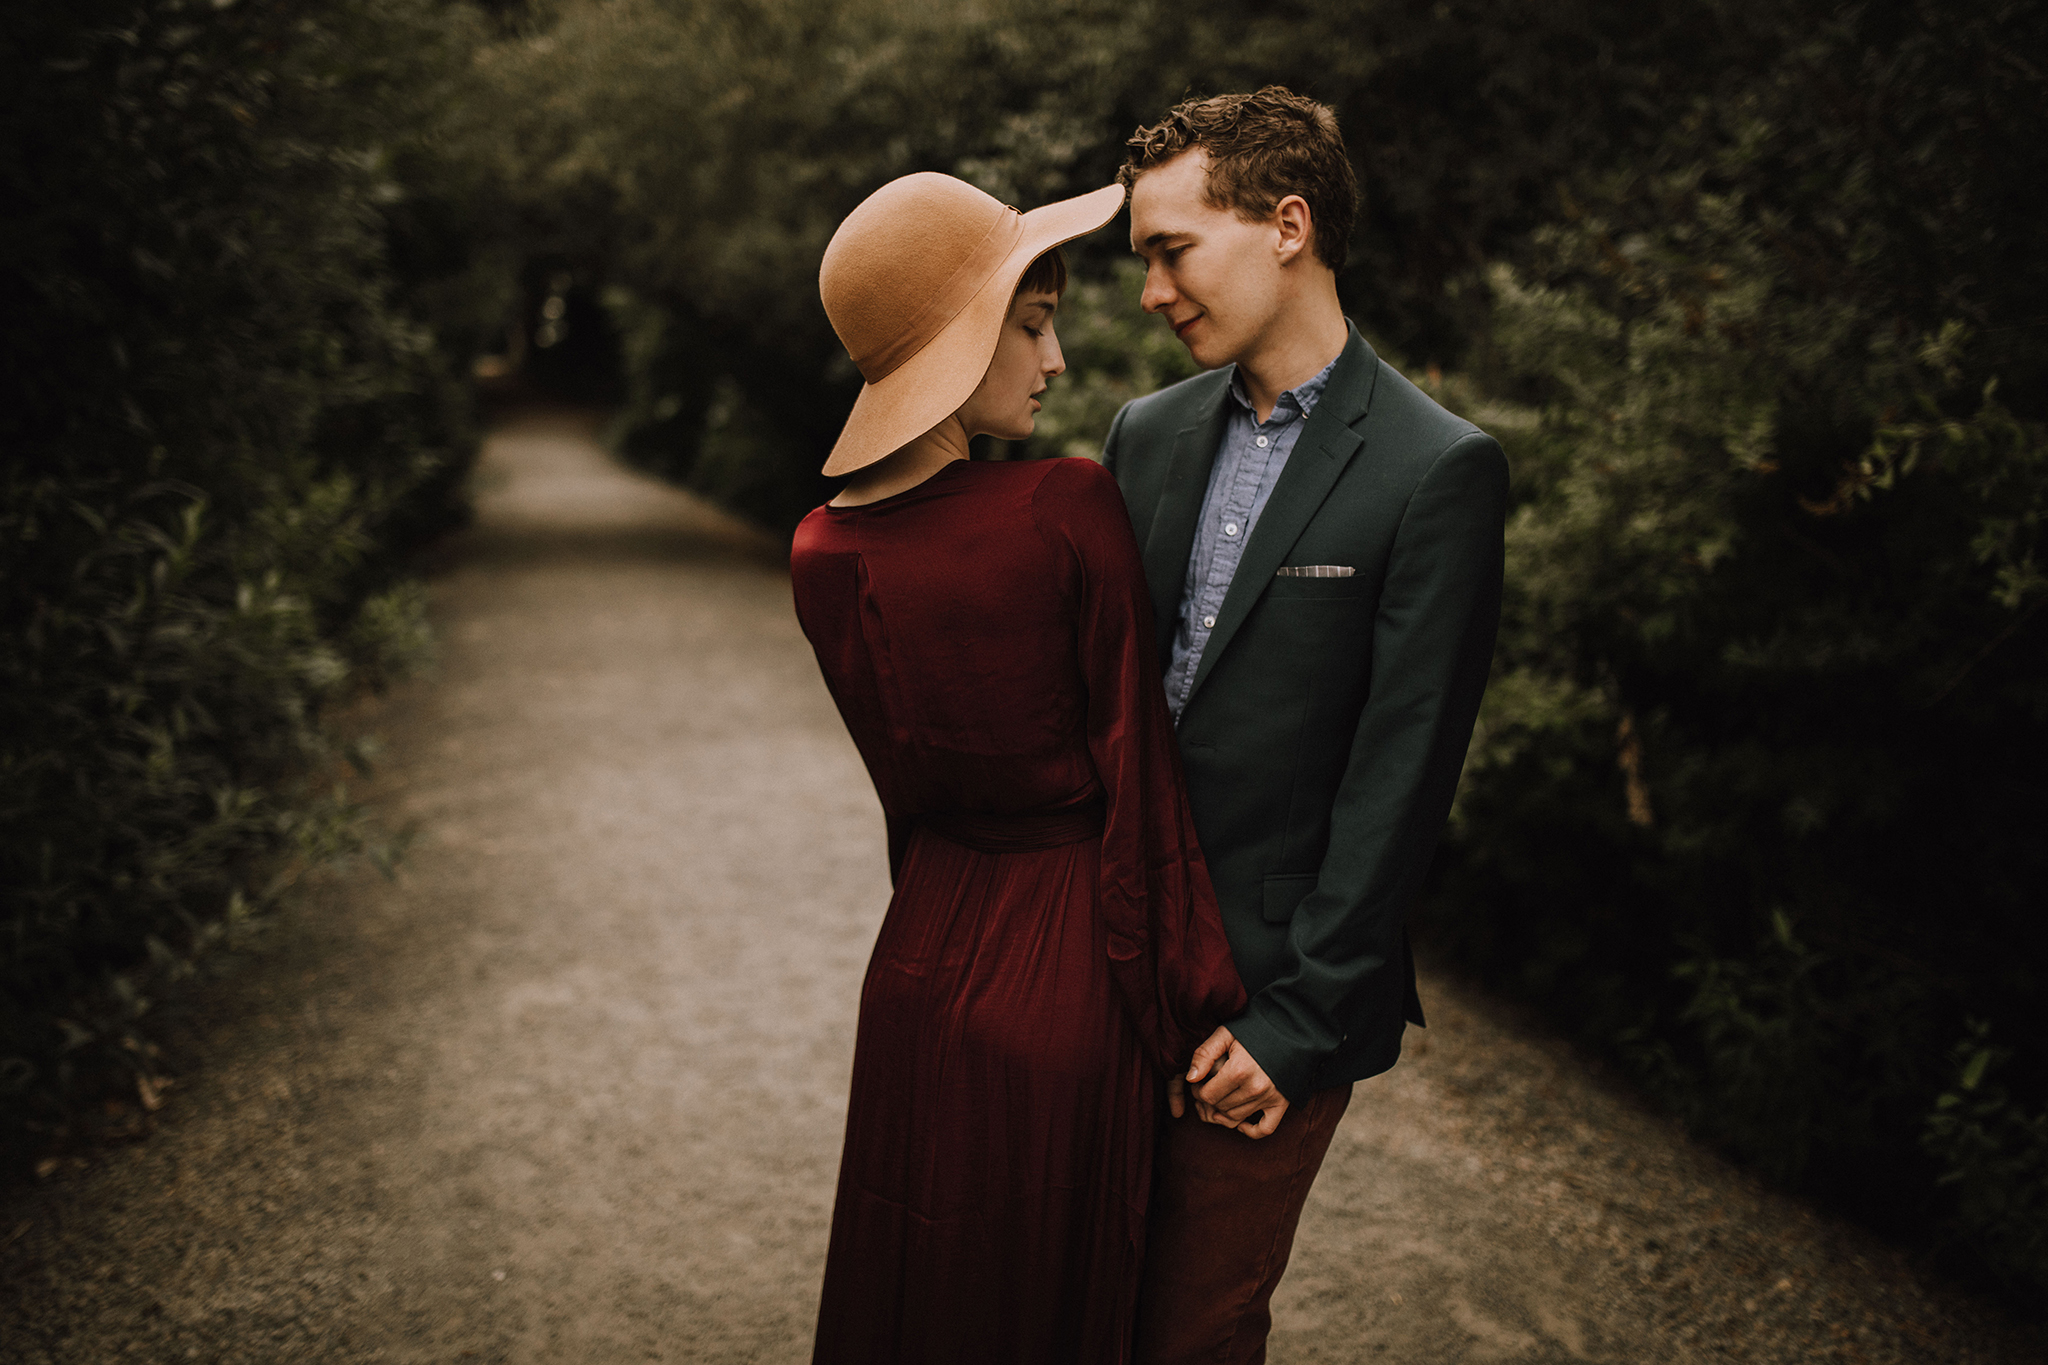 Myrtle and Moss Photography, Styled Couple Session on a boardwalk and dock, girl in red dress and hat